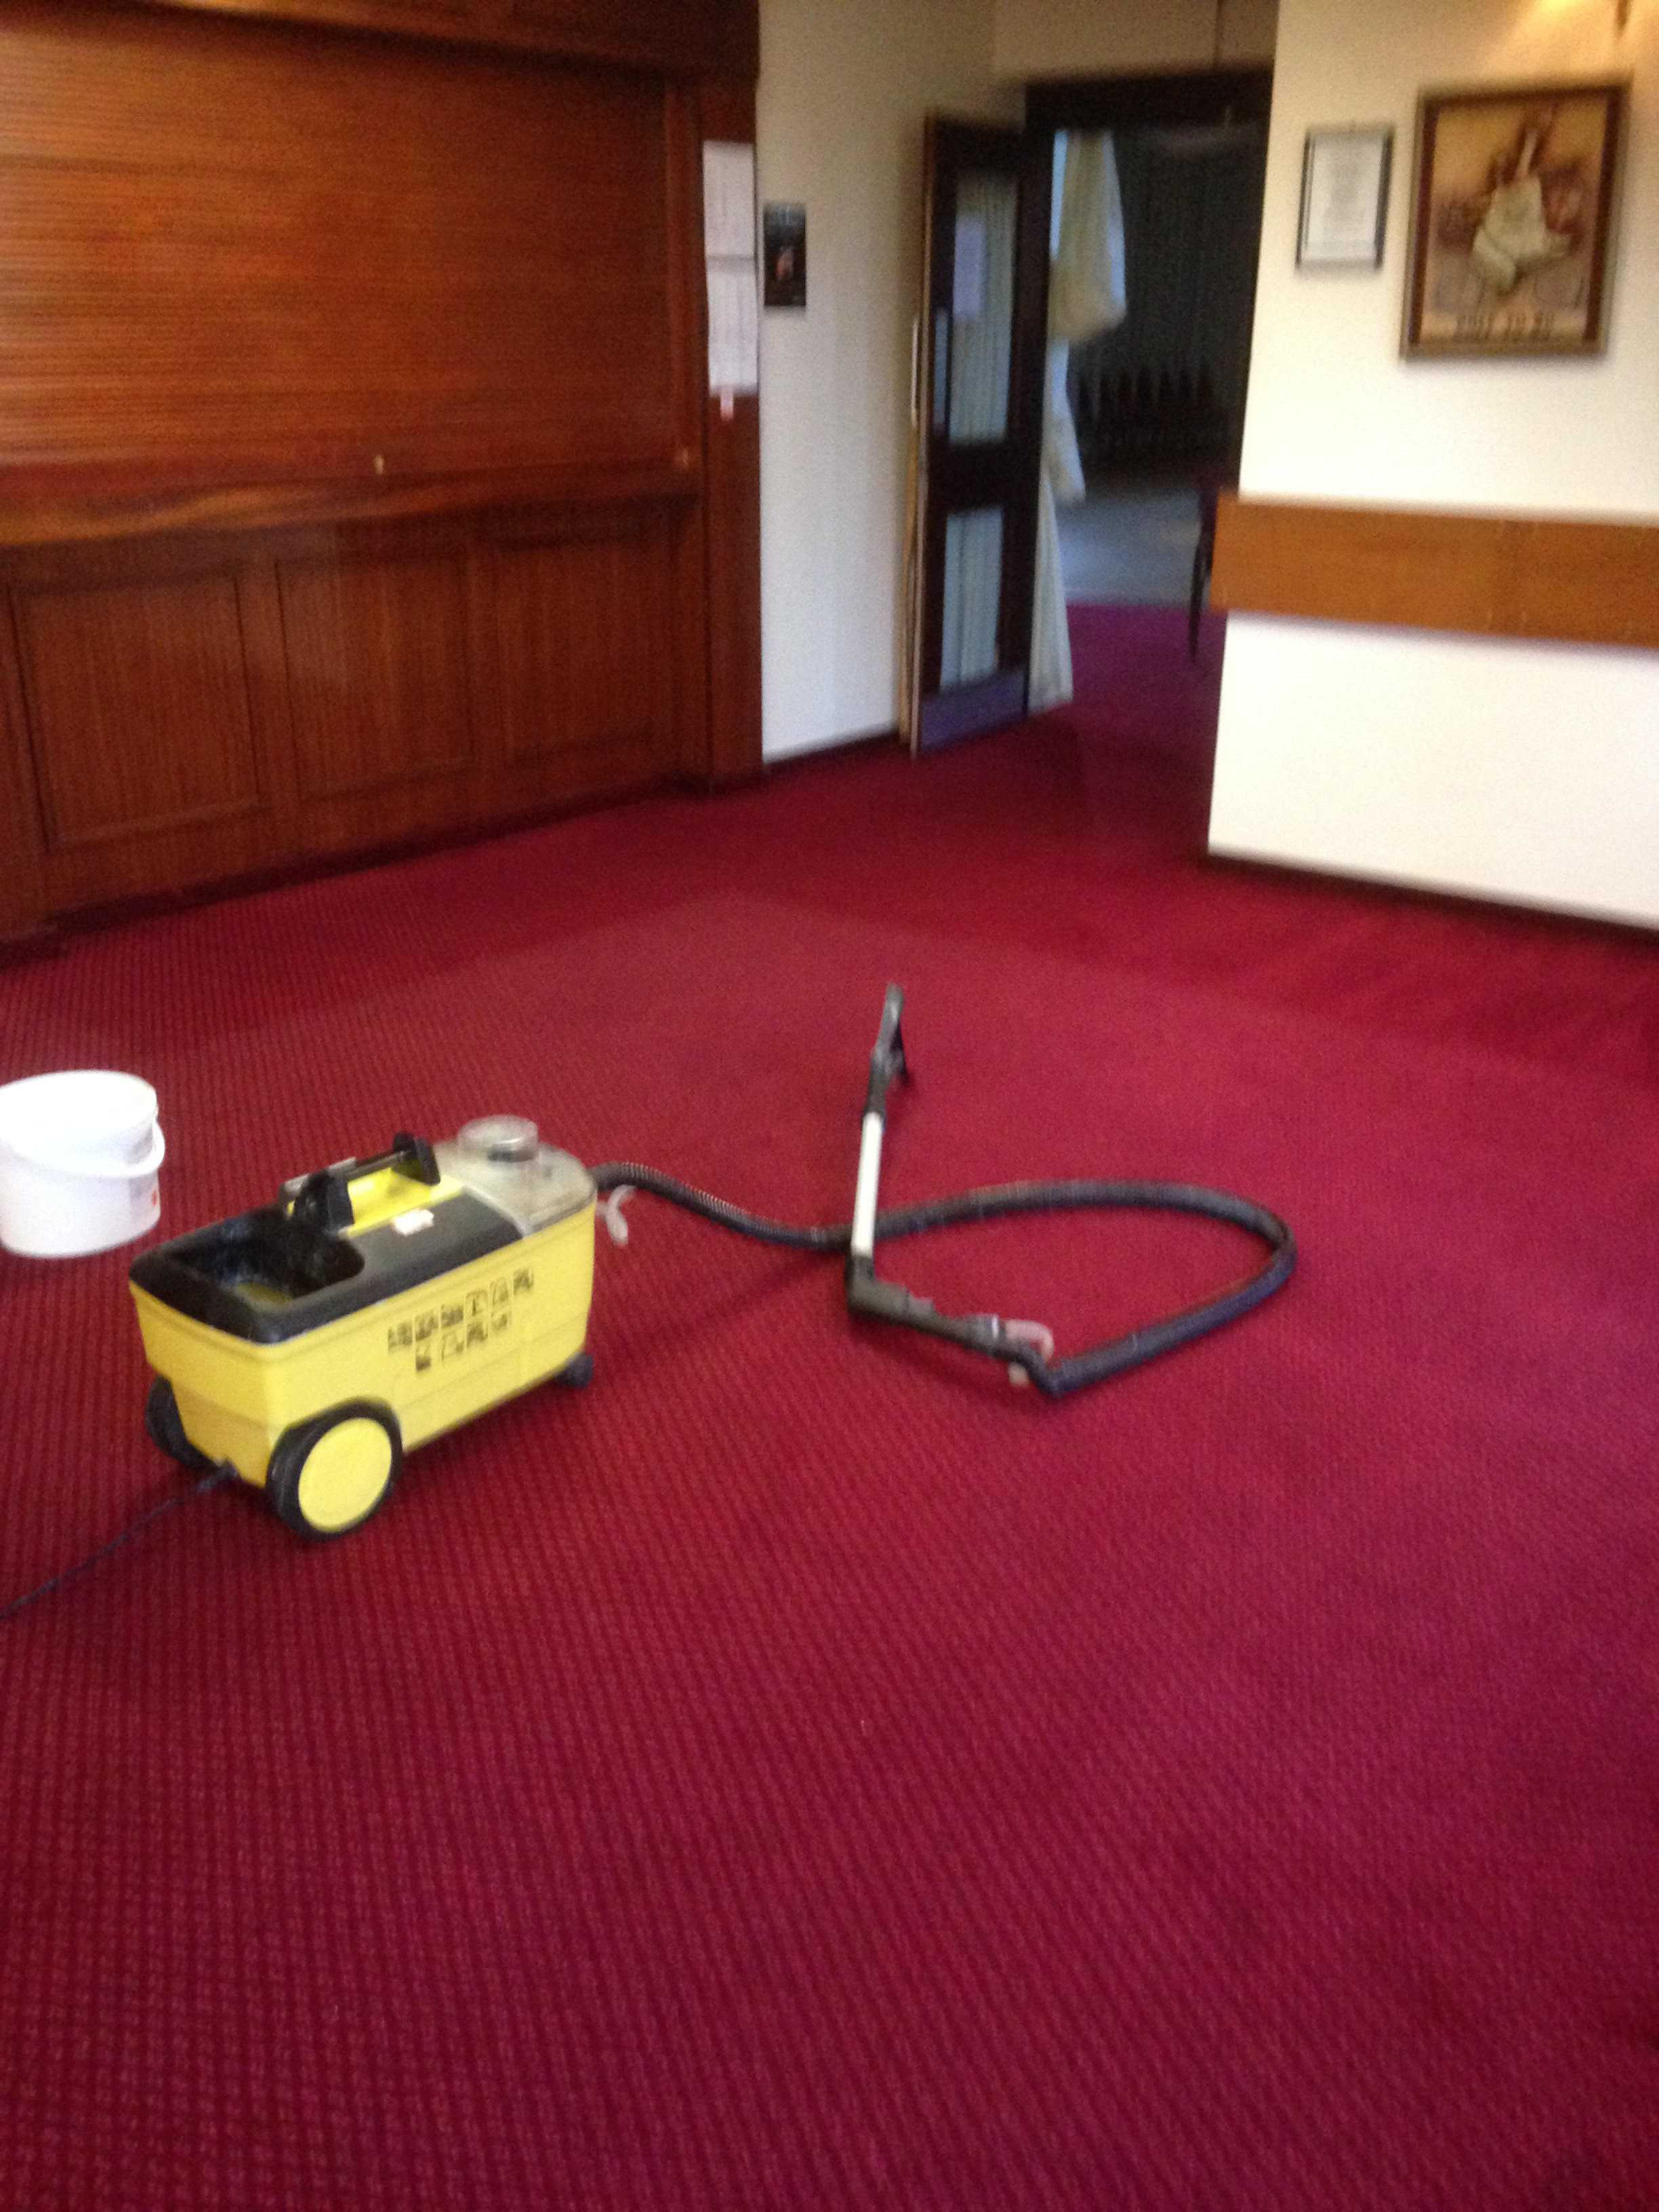 Steve Scott Carpet Cleaning